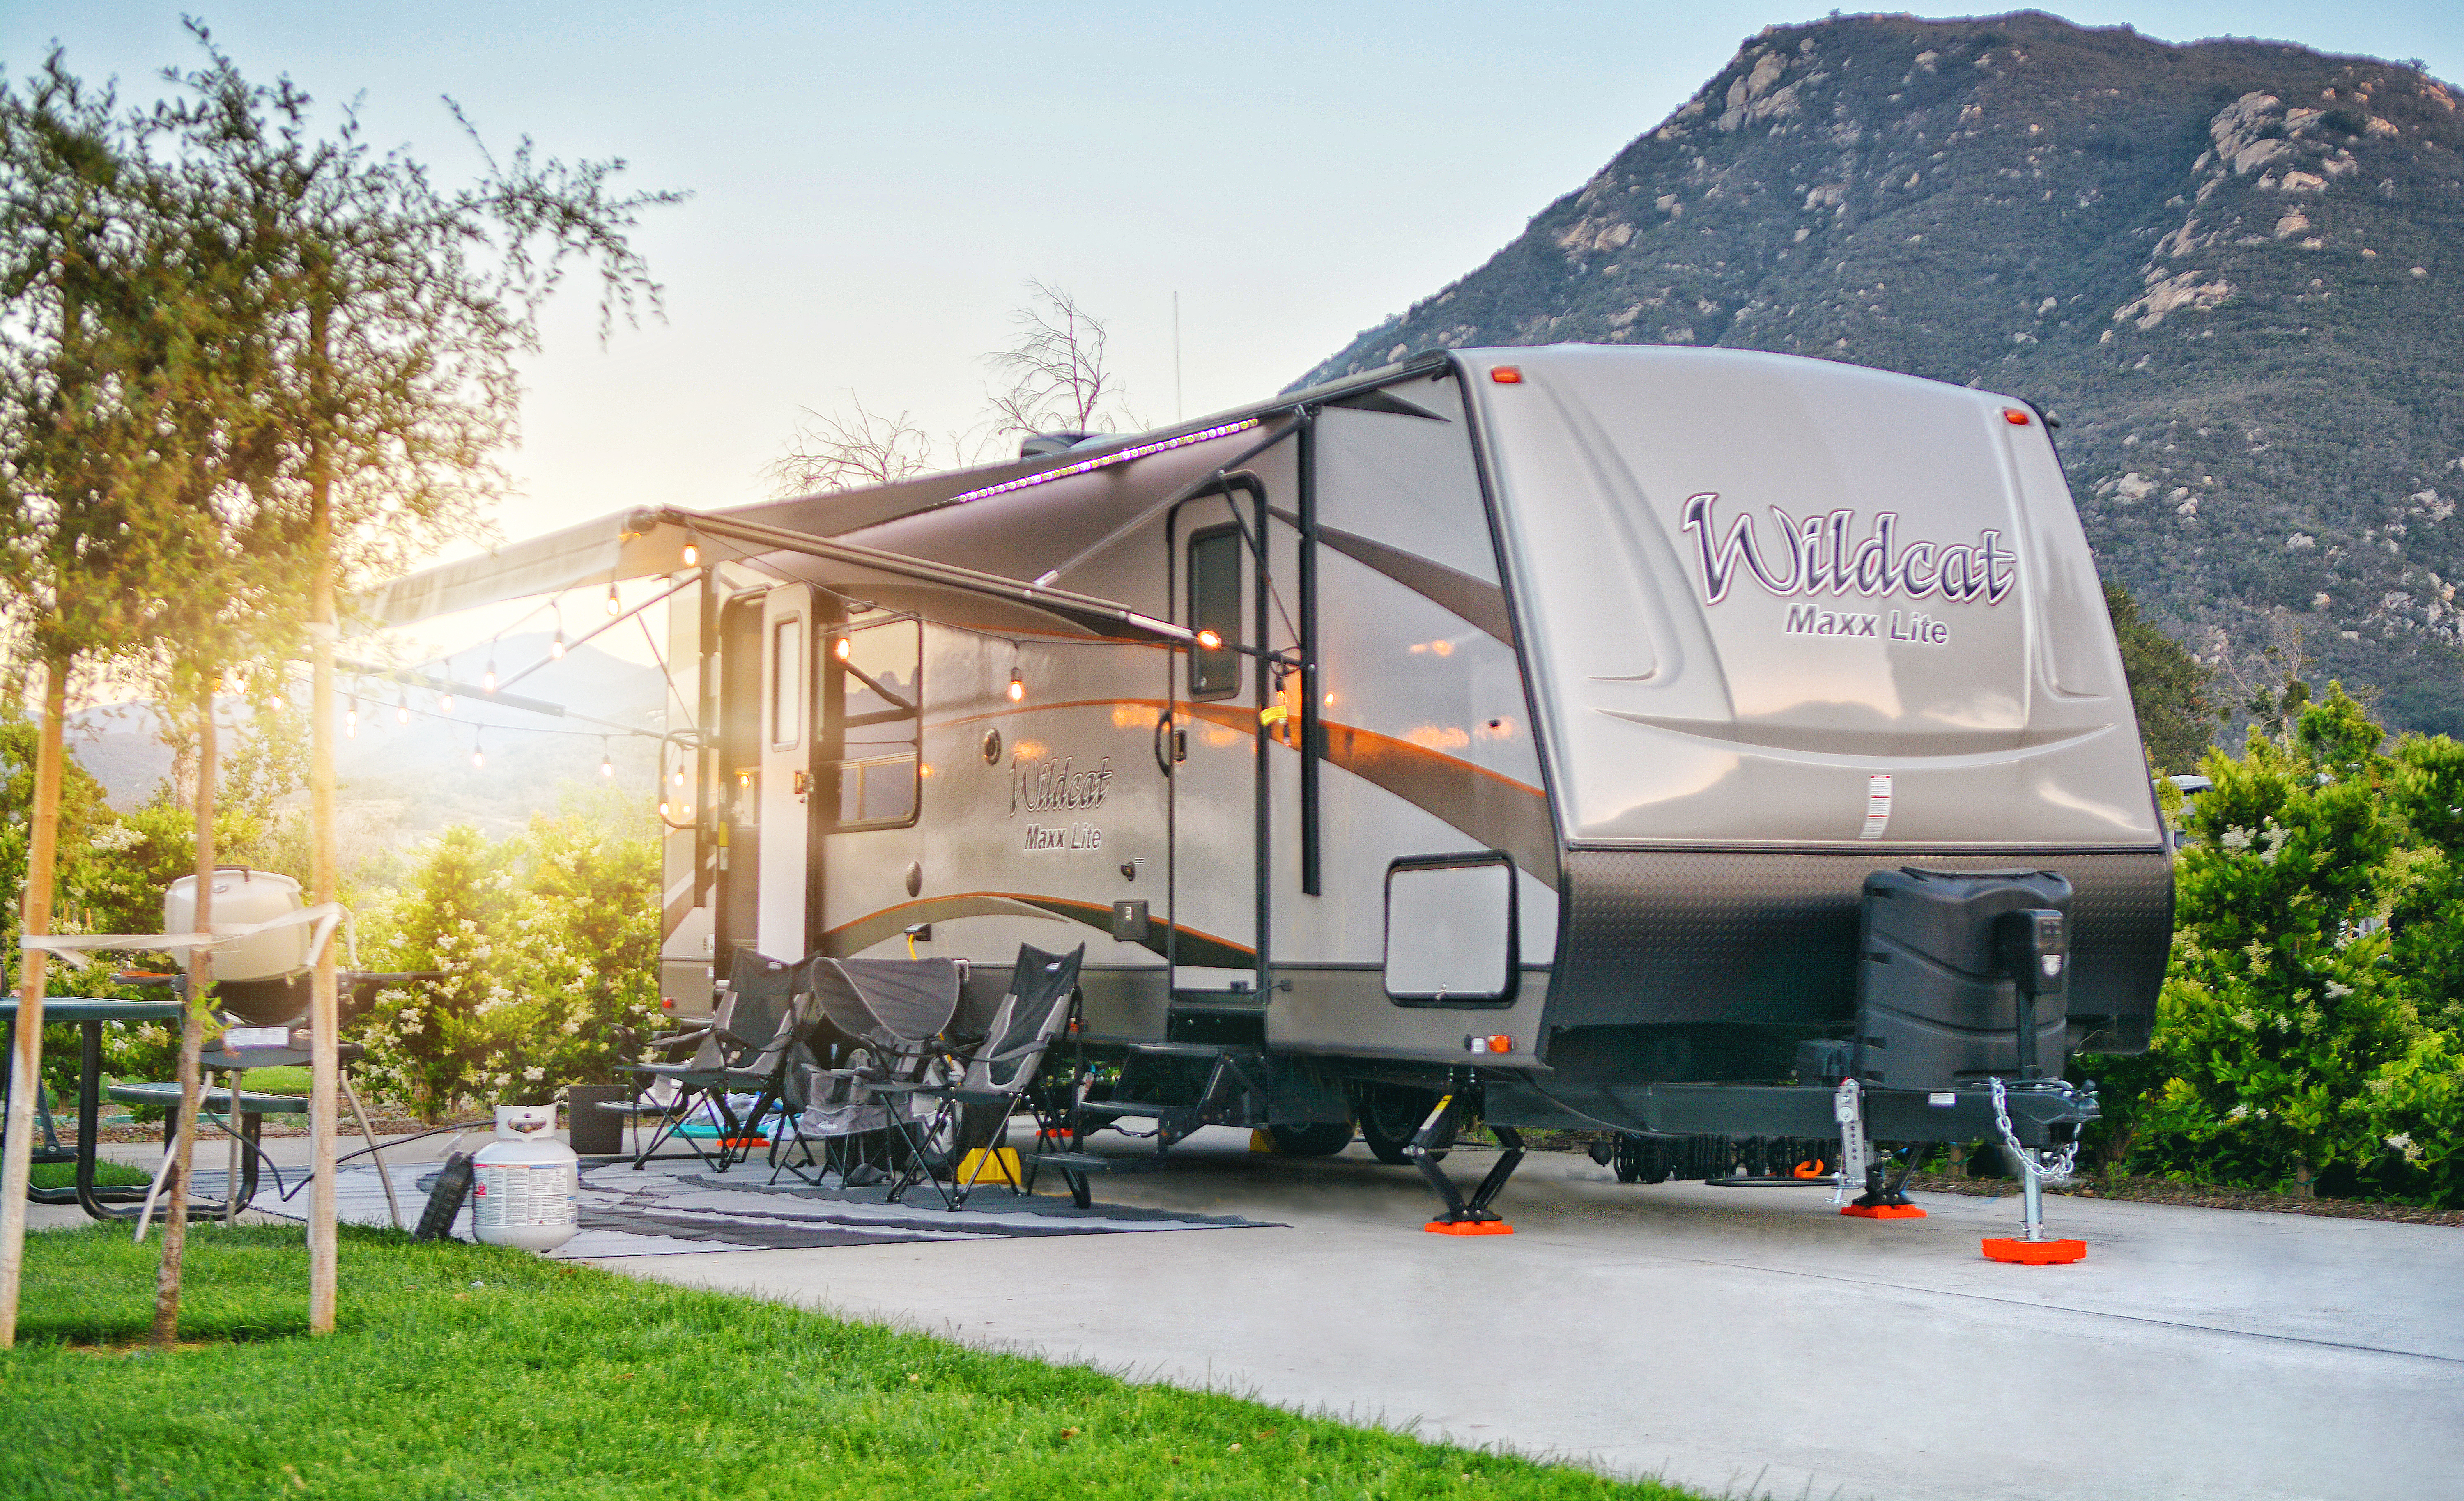 Full hook ups to make your camping experience amazing! Easily towed with provided upgrades sway bars!. Forest River Wildcat Maxx Lite 2018